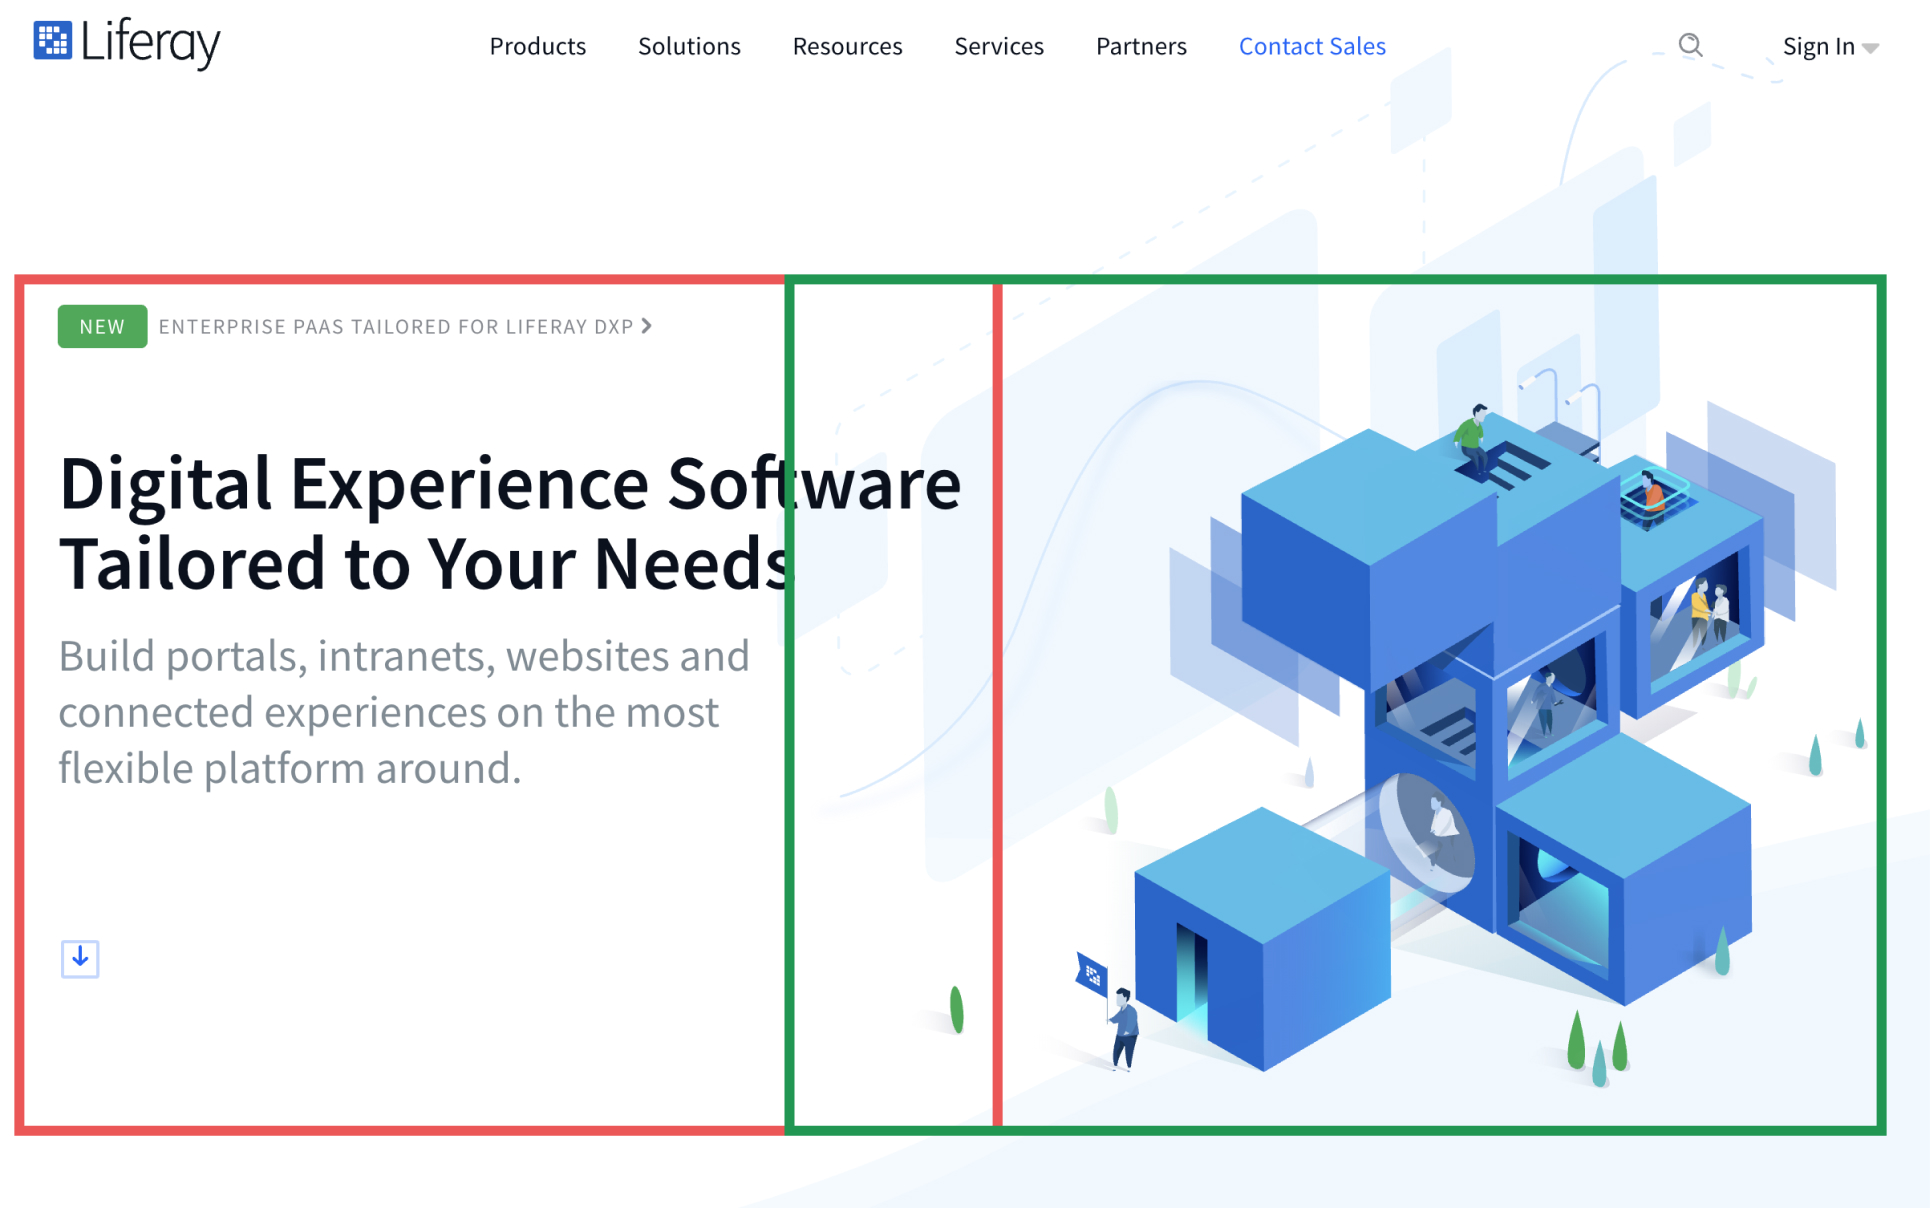 Liferay-website-layout